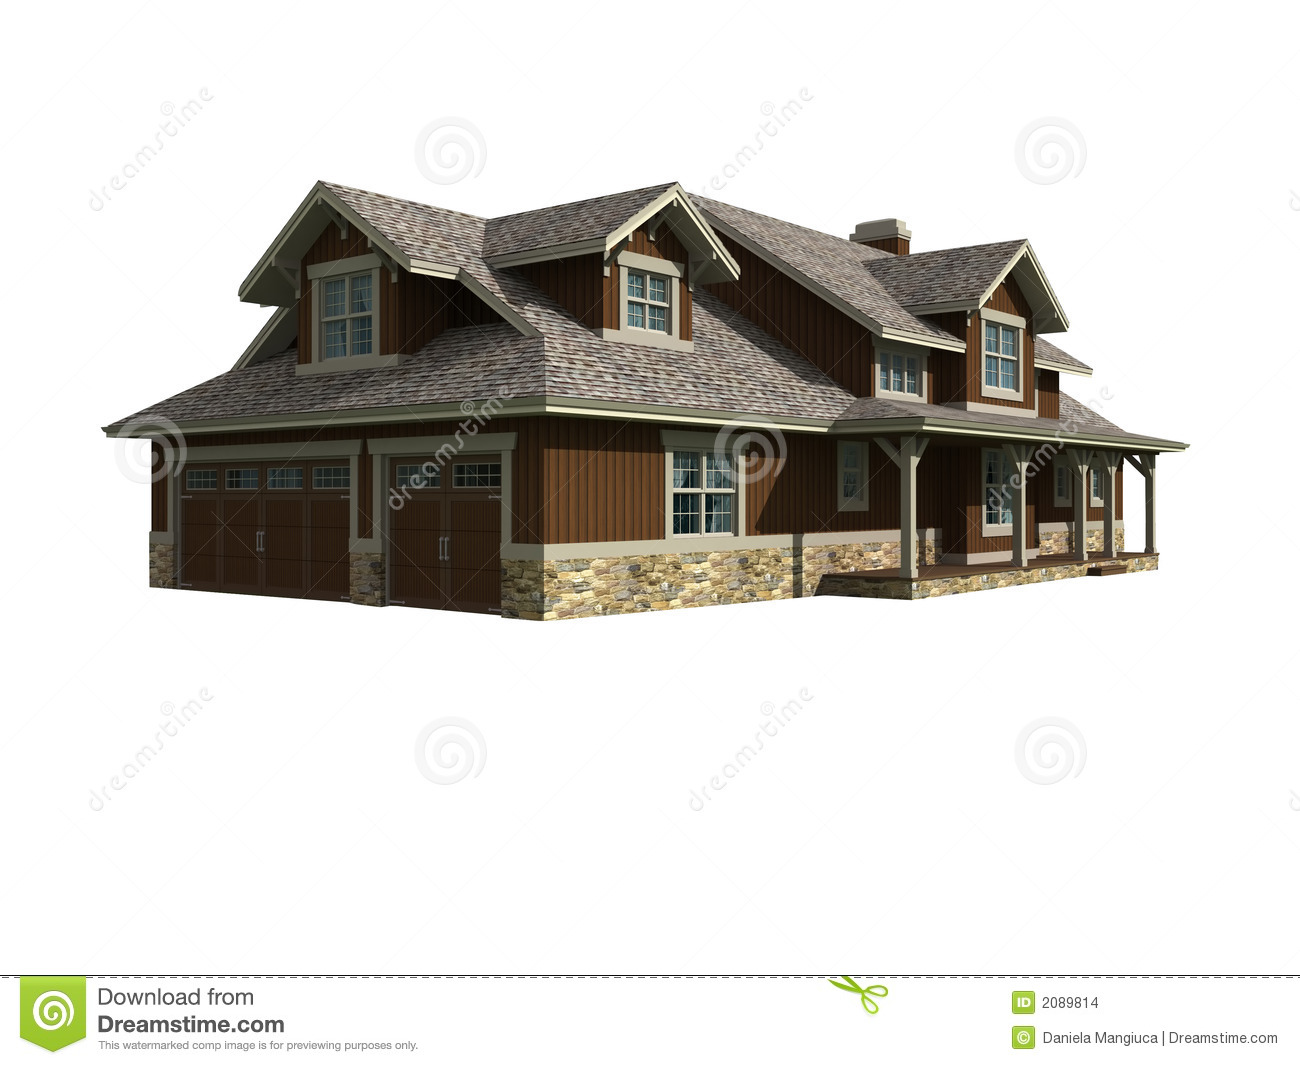 3d model of ranch home stock images image 2089814 for Home 3d model